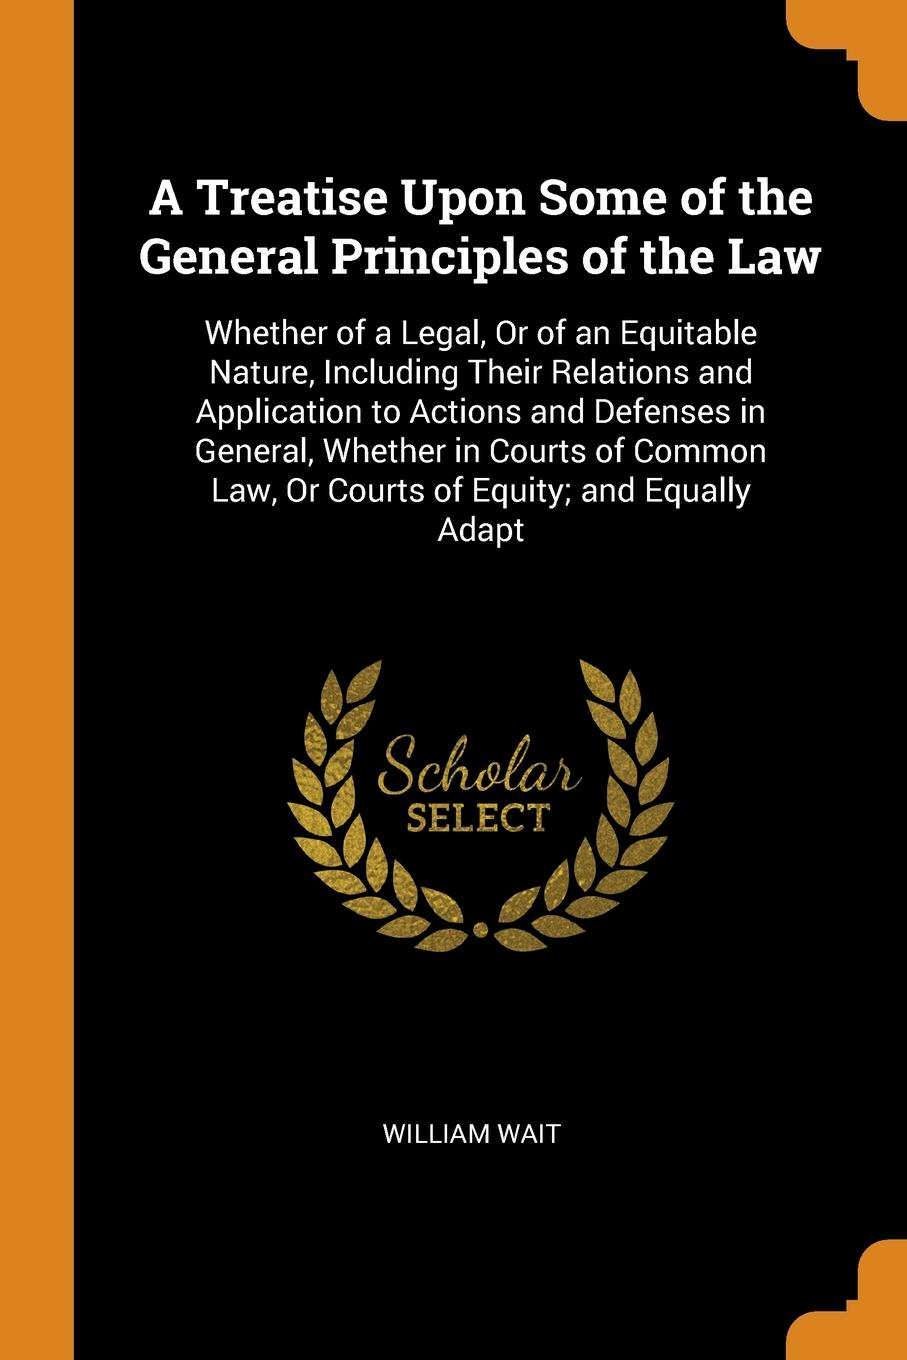 лучшая цена William Wait A Treatise Upon Some of the General Principles of the Law. Whether of a Legal, Or of an Equitable Nature, Including Their Relations and Application to Actions and Defenses in General, Whether in Courts of Common Law, Or Courts of Equity; and Equal...